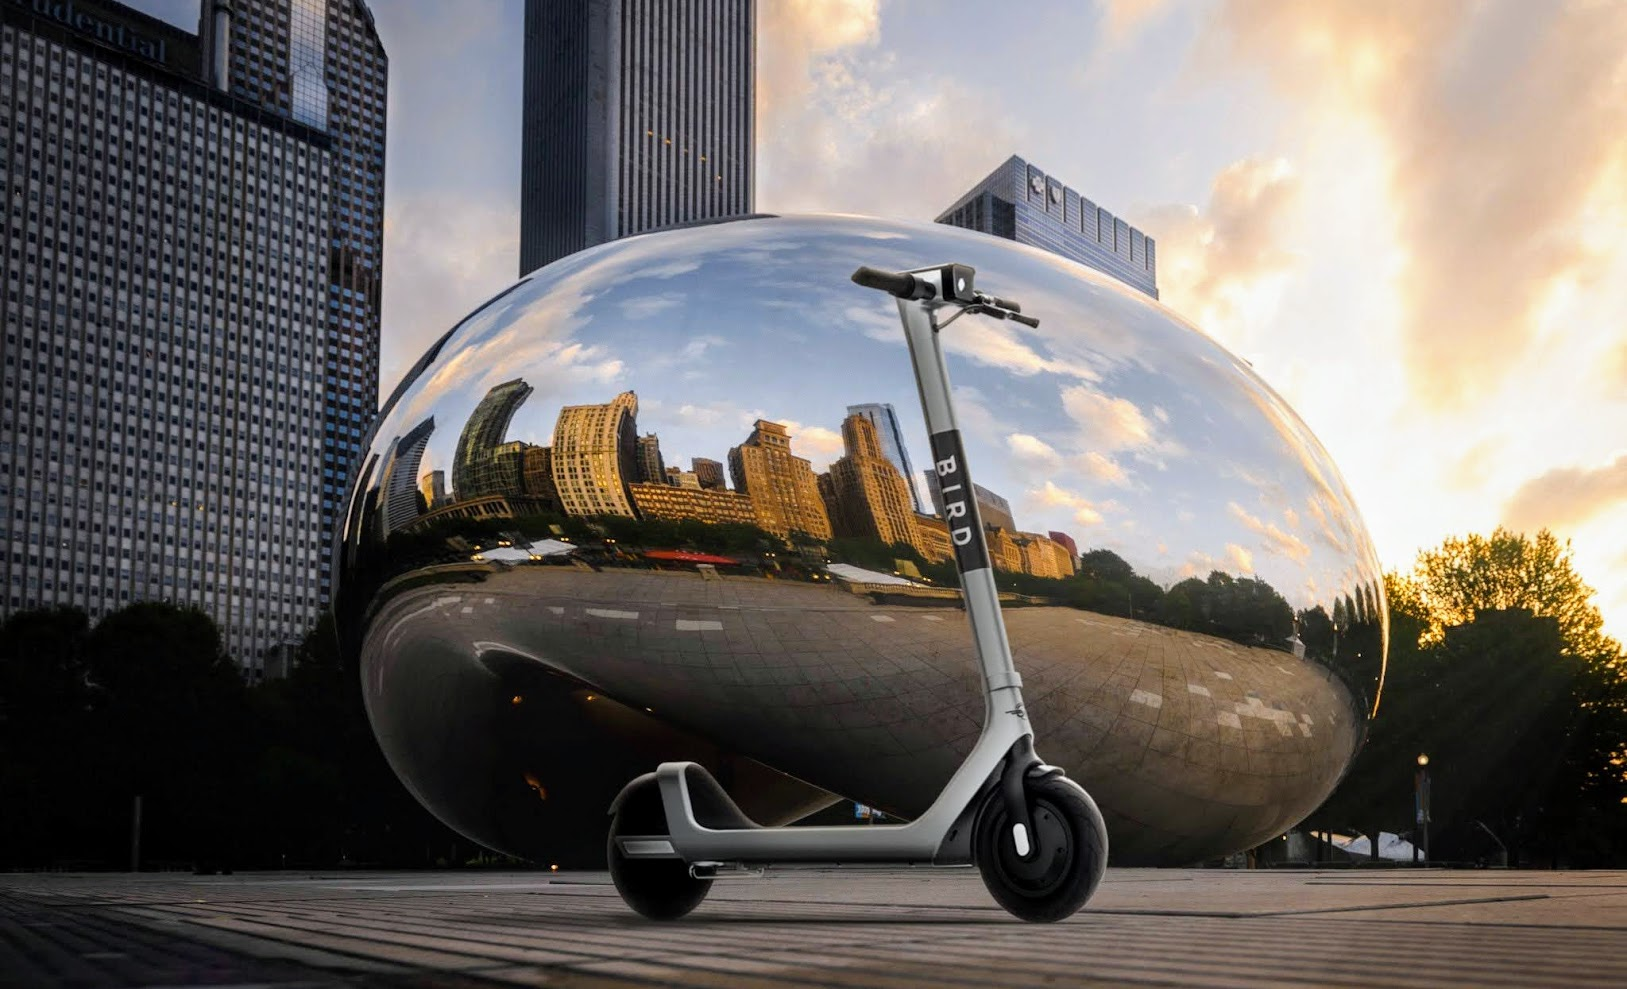 Bird Two electric scooter in front of Chicago's famous Bean sculpture